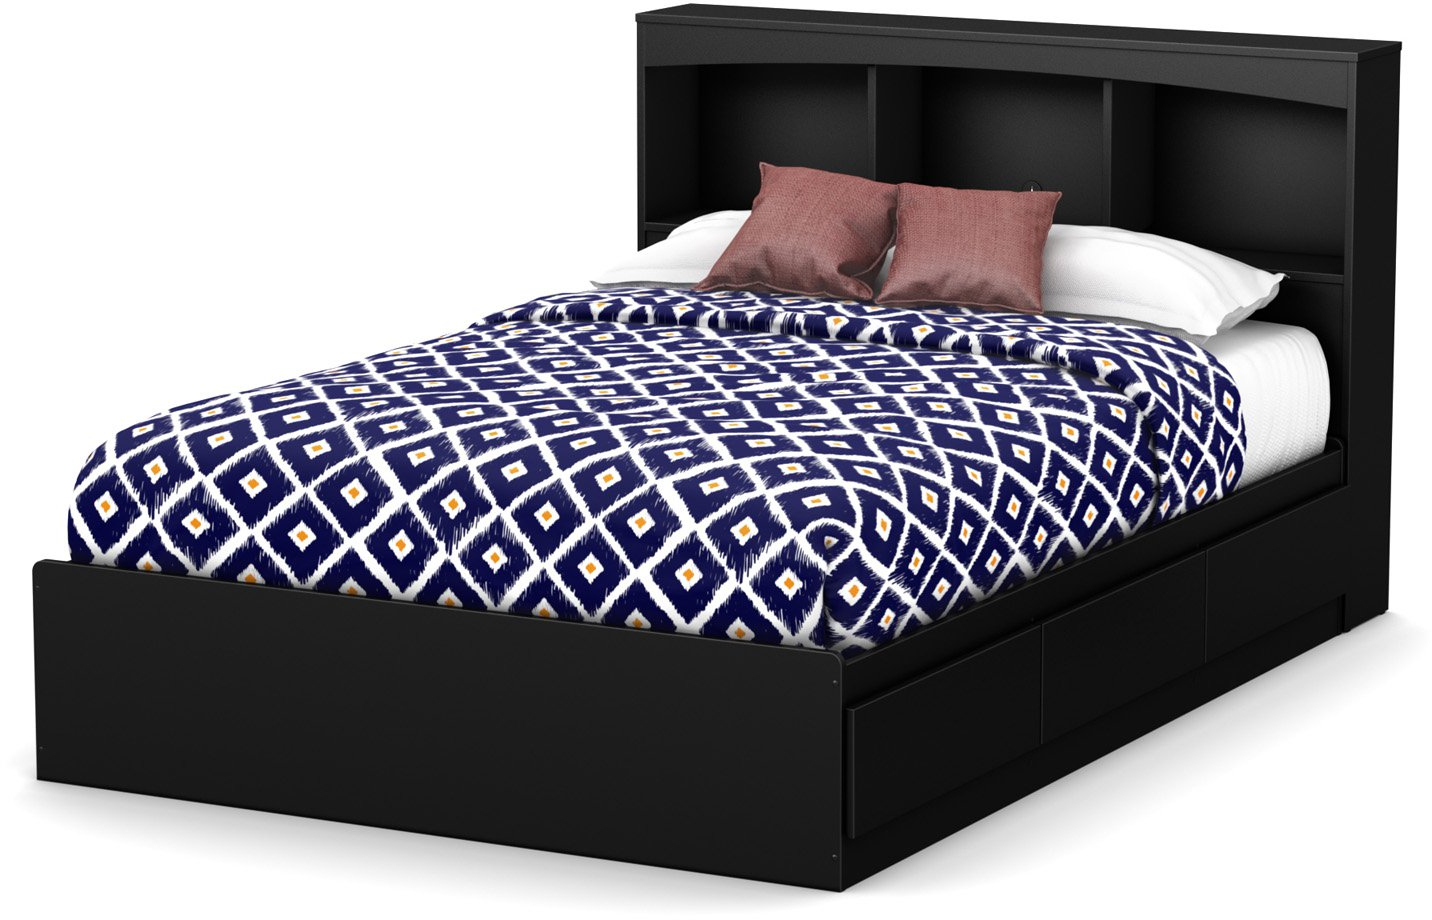 Details About Modern Black Wood Headboard With Bookcase Storage Shelf For Full Size Bed Frame